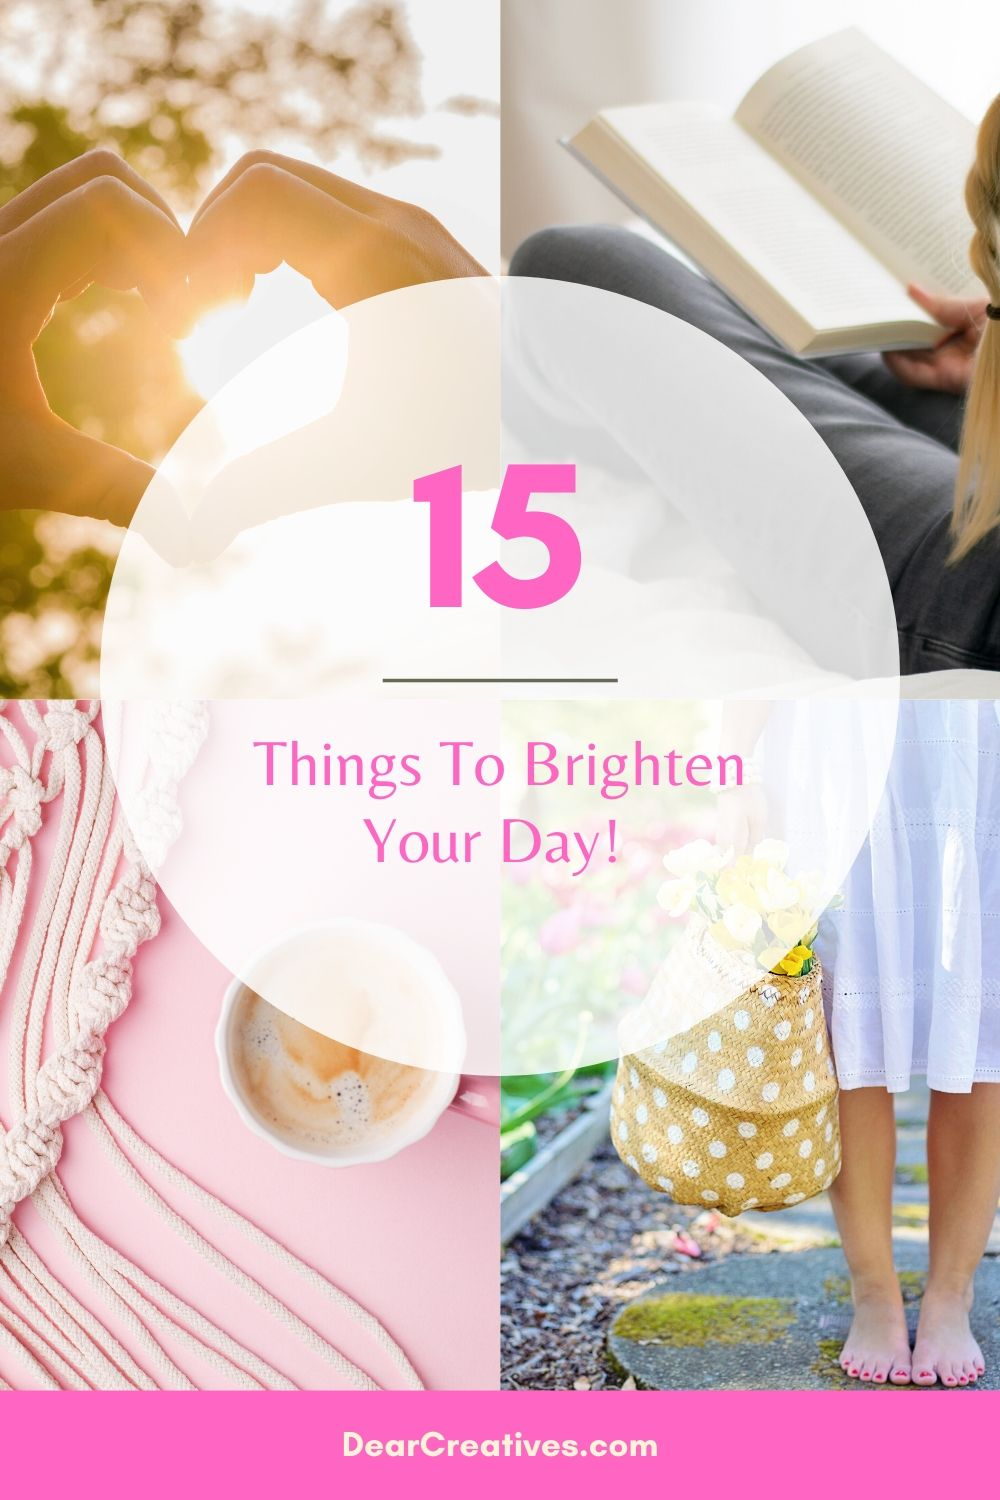 15+ Things To Brighten Your Day!